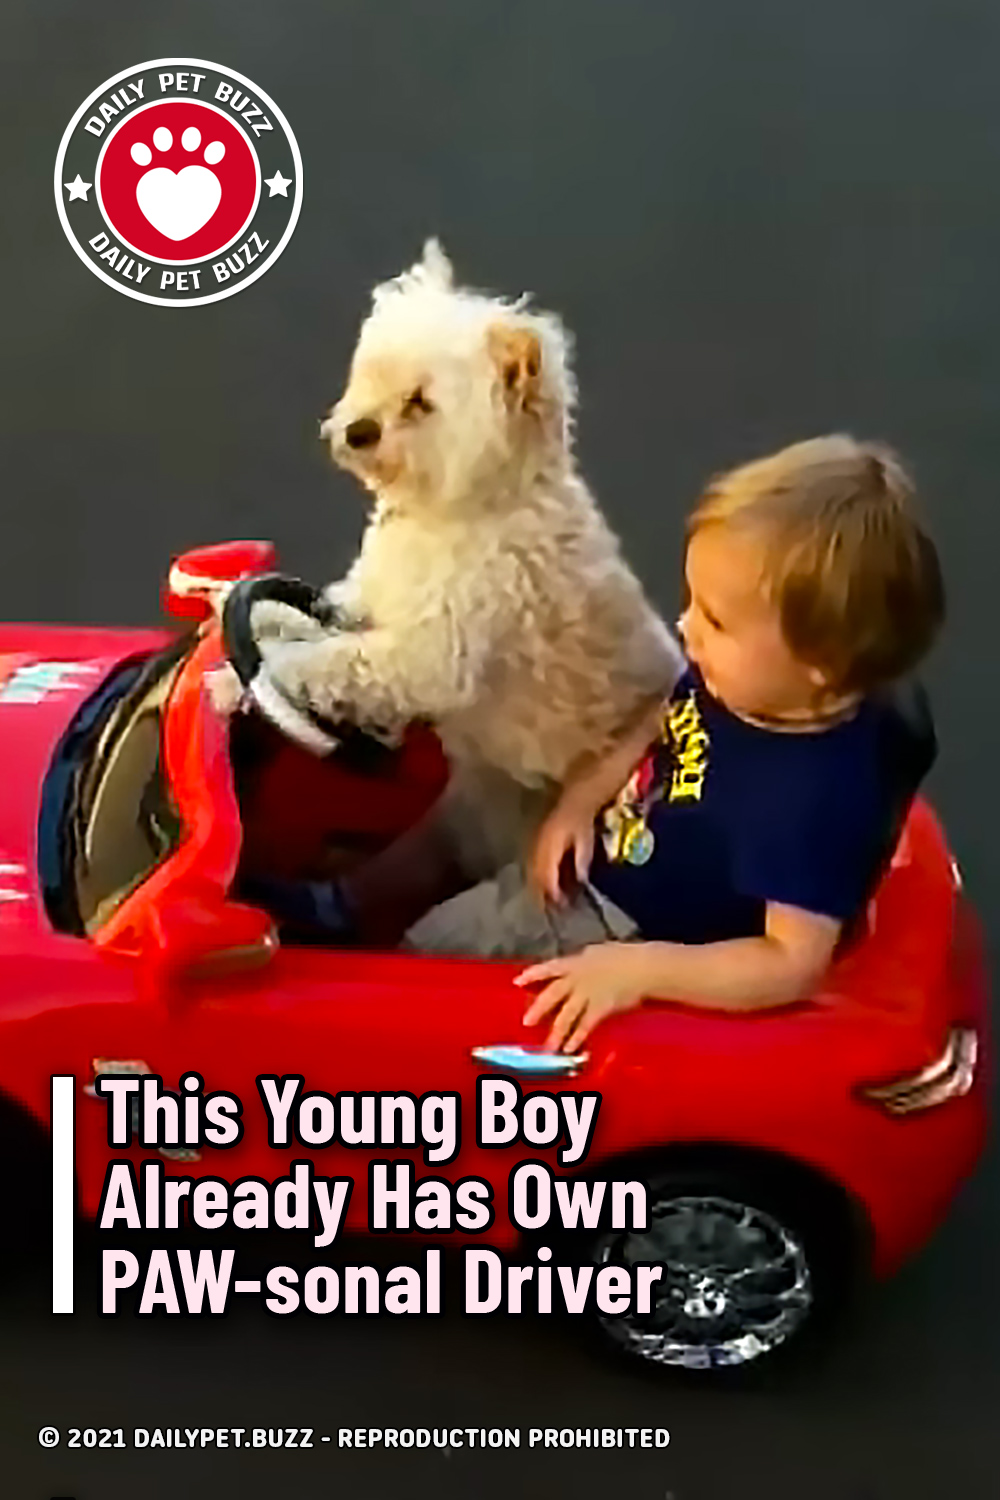 This Young Boy Already Has Own PAW-sonal Driver